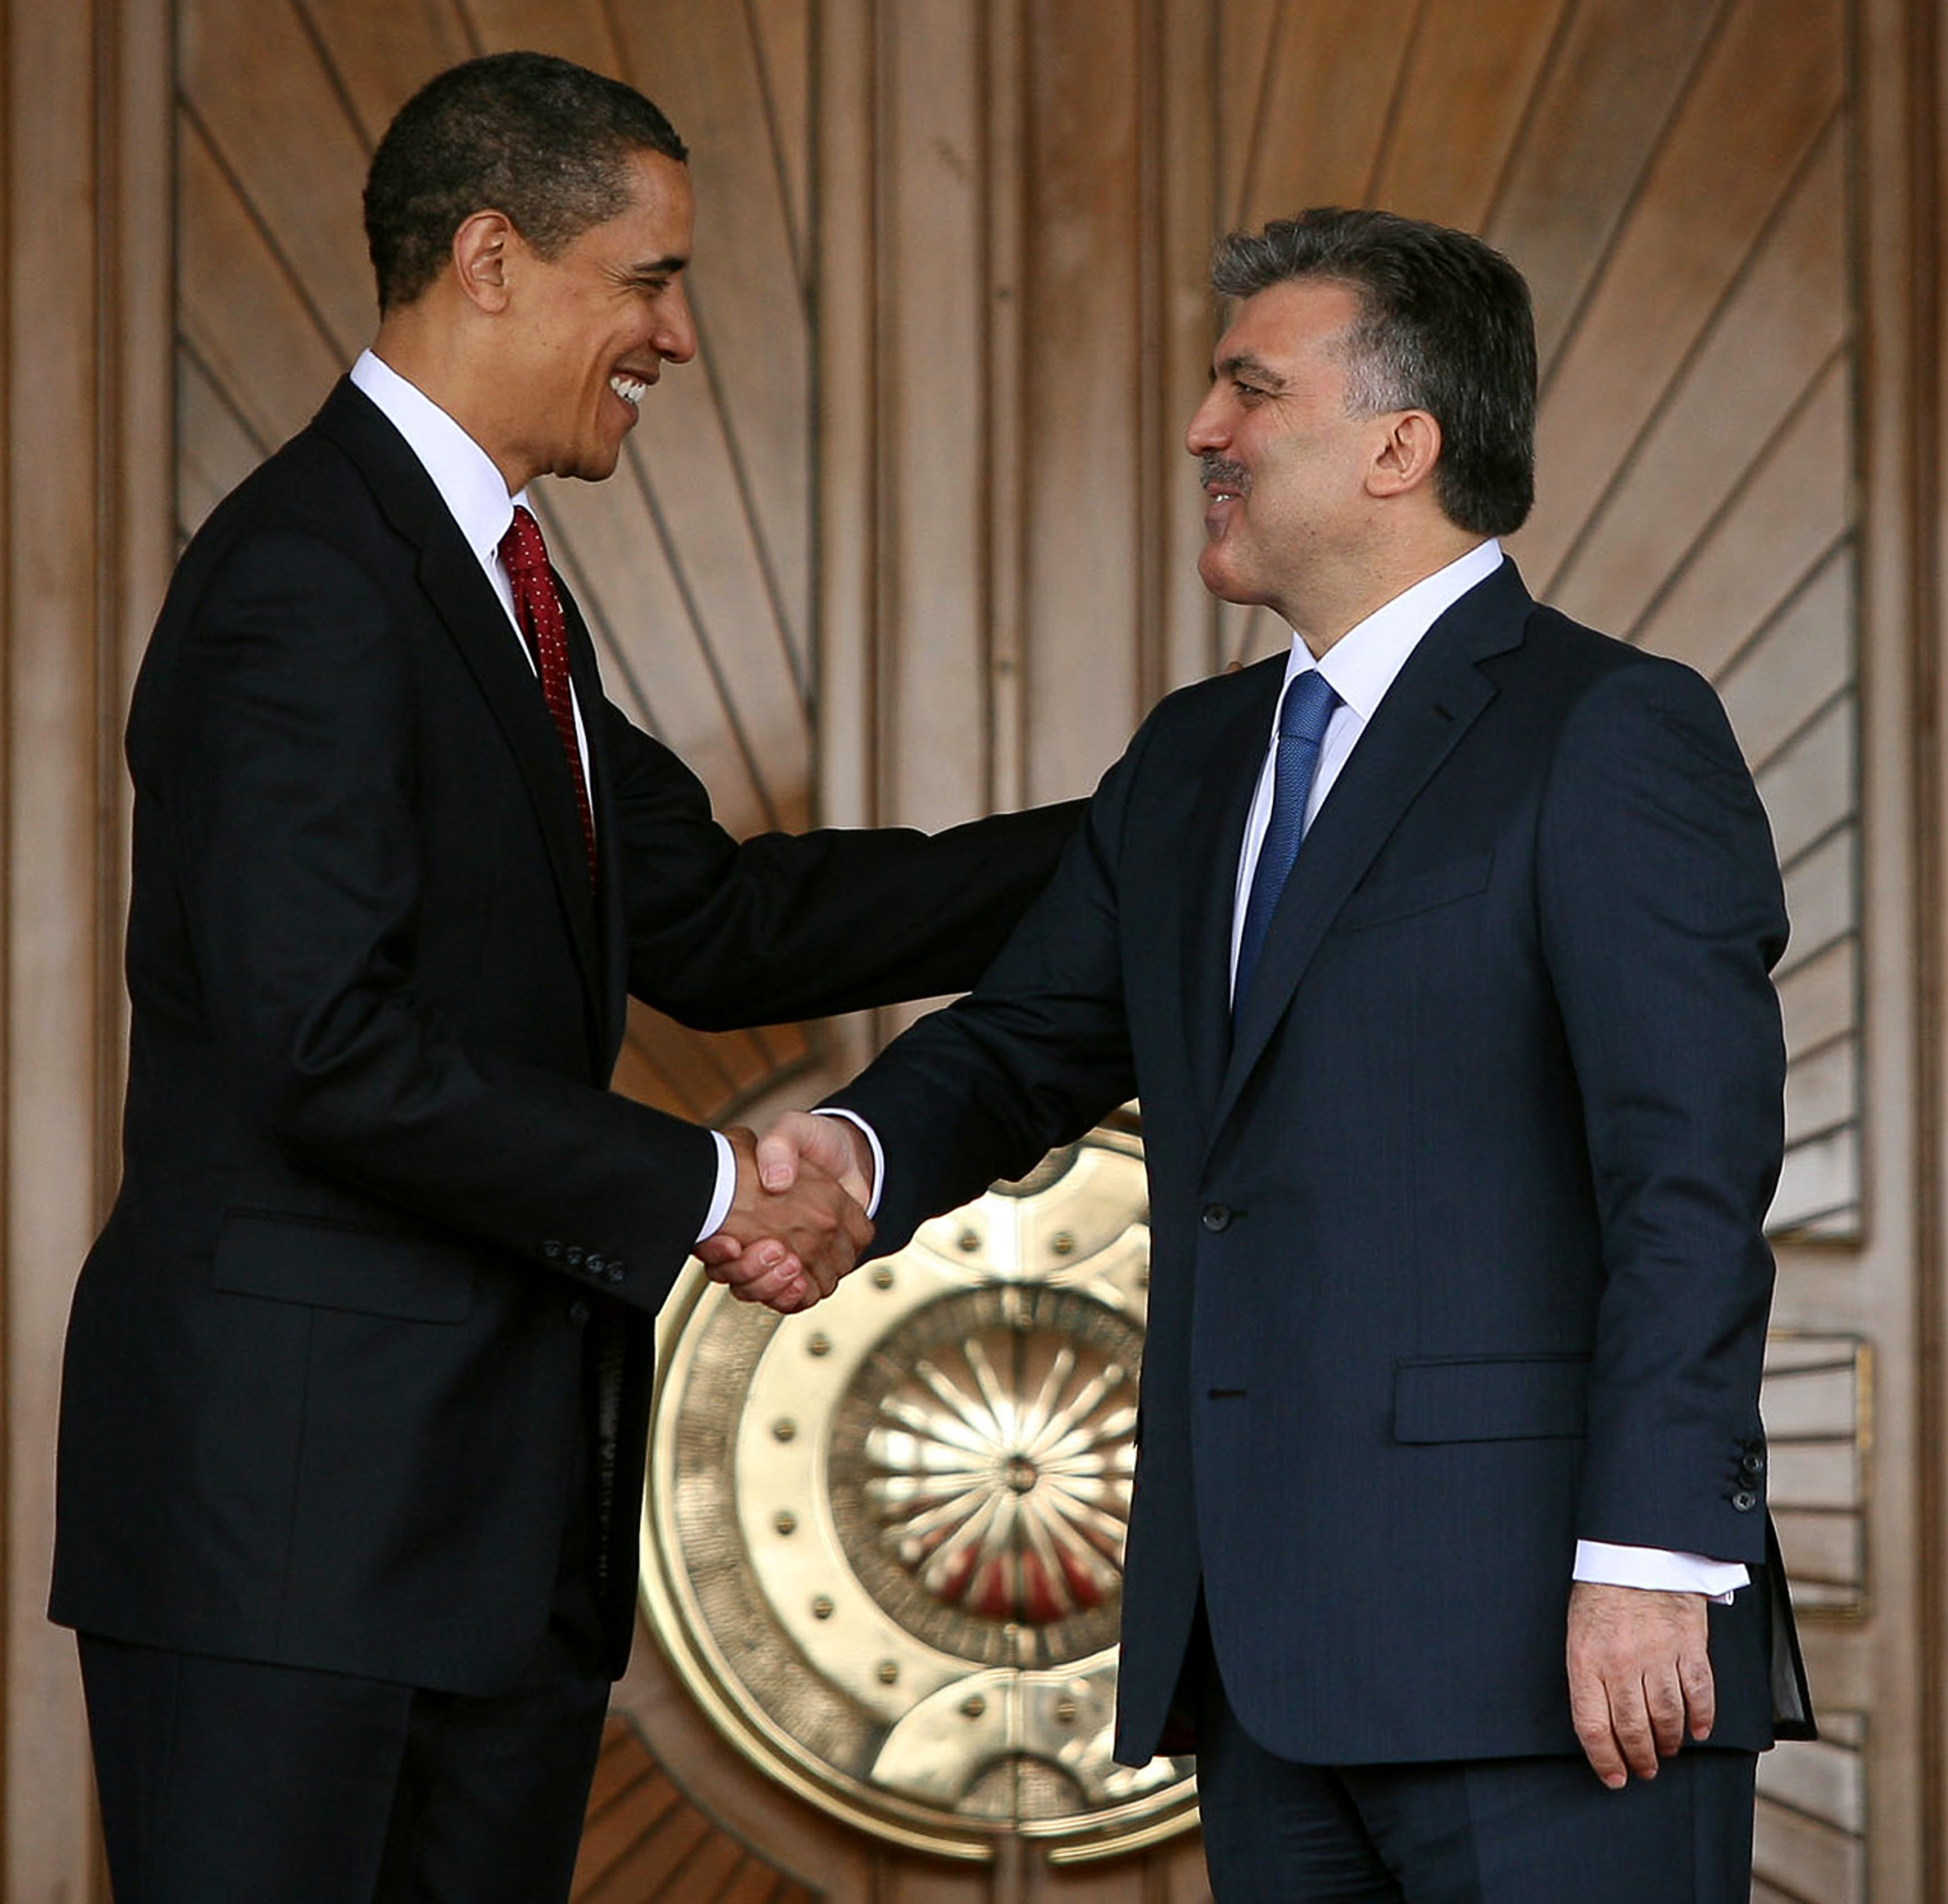 Getty Images. Turkish President Abdullah Gul (R) and U.S. President Barack Obama shake hands during a welcoming ceremony in the courtyard of the Cankaya Presidential Palace on April 6, 2009 in Istanbul, Turkey.